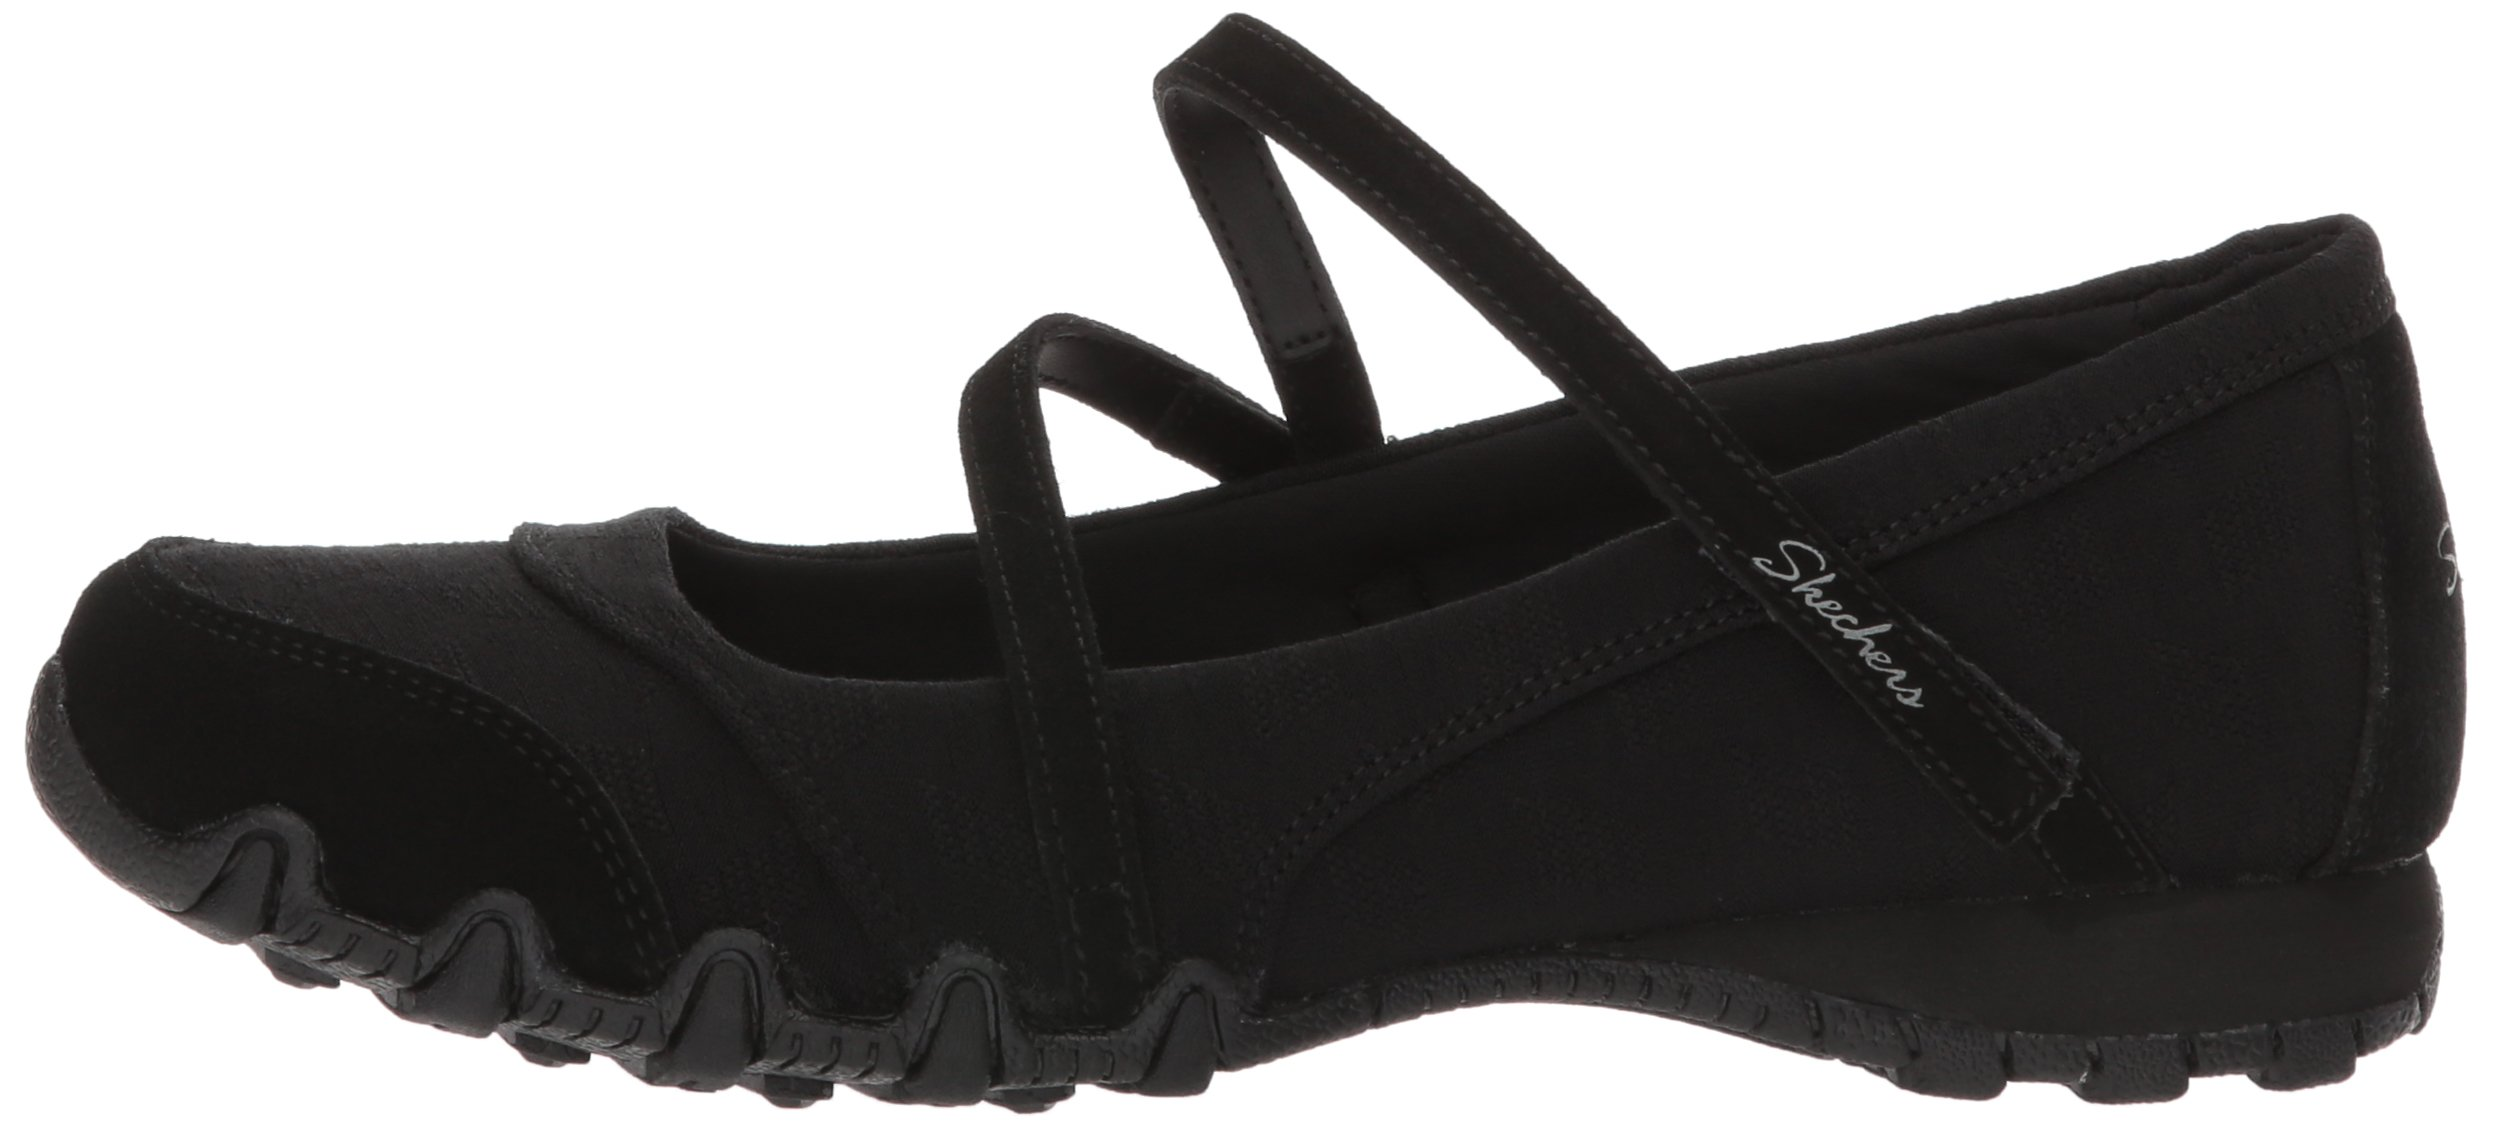 Skechers Women's Bikers -Fiesta Mary Jane Flat,7 M US,Black by Skechers (Image #5)